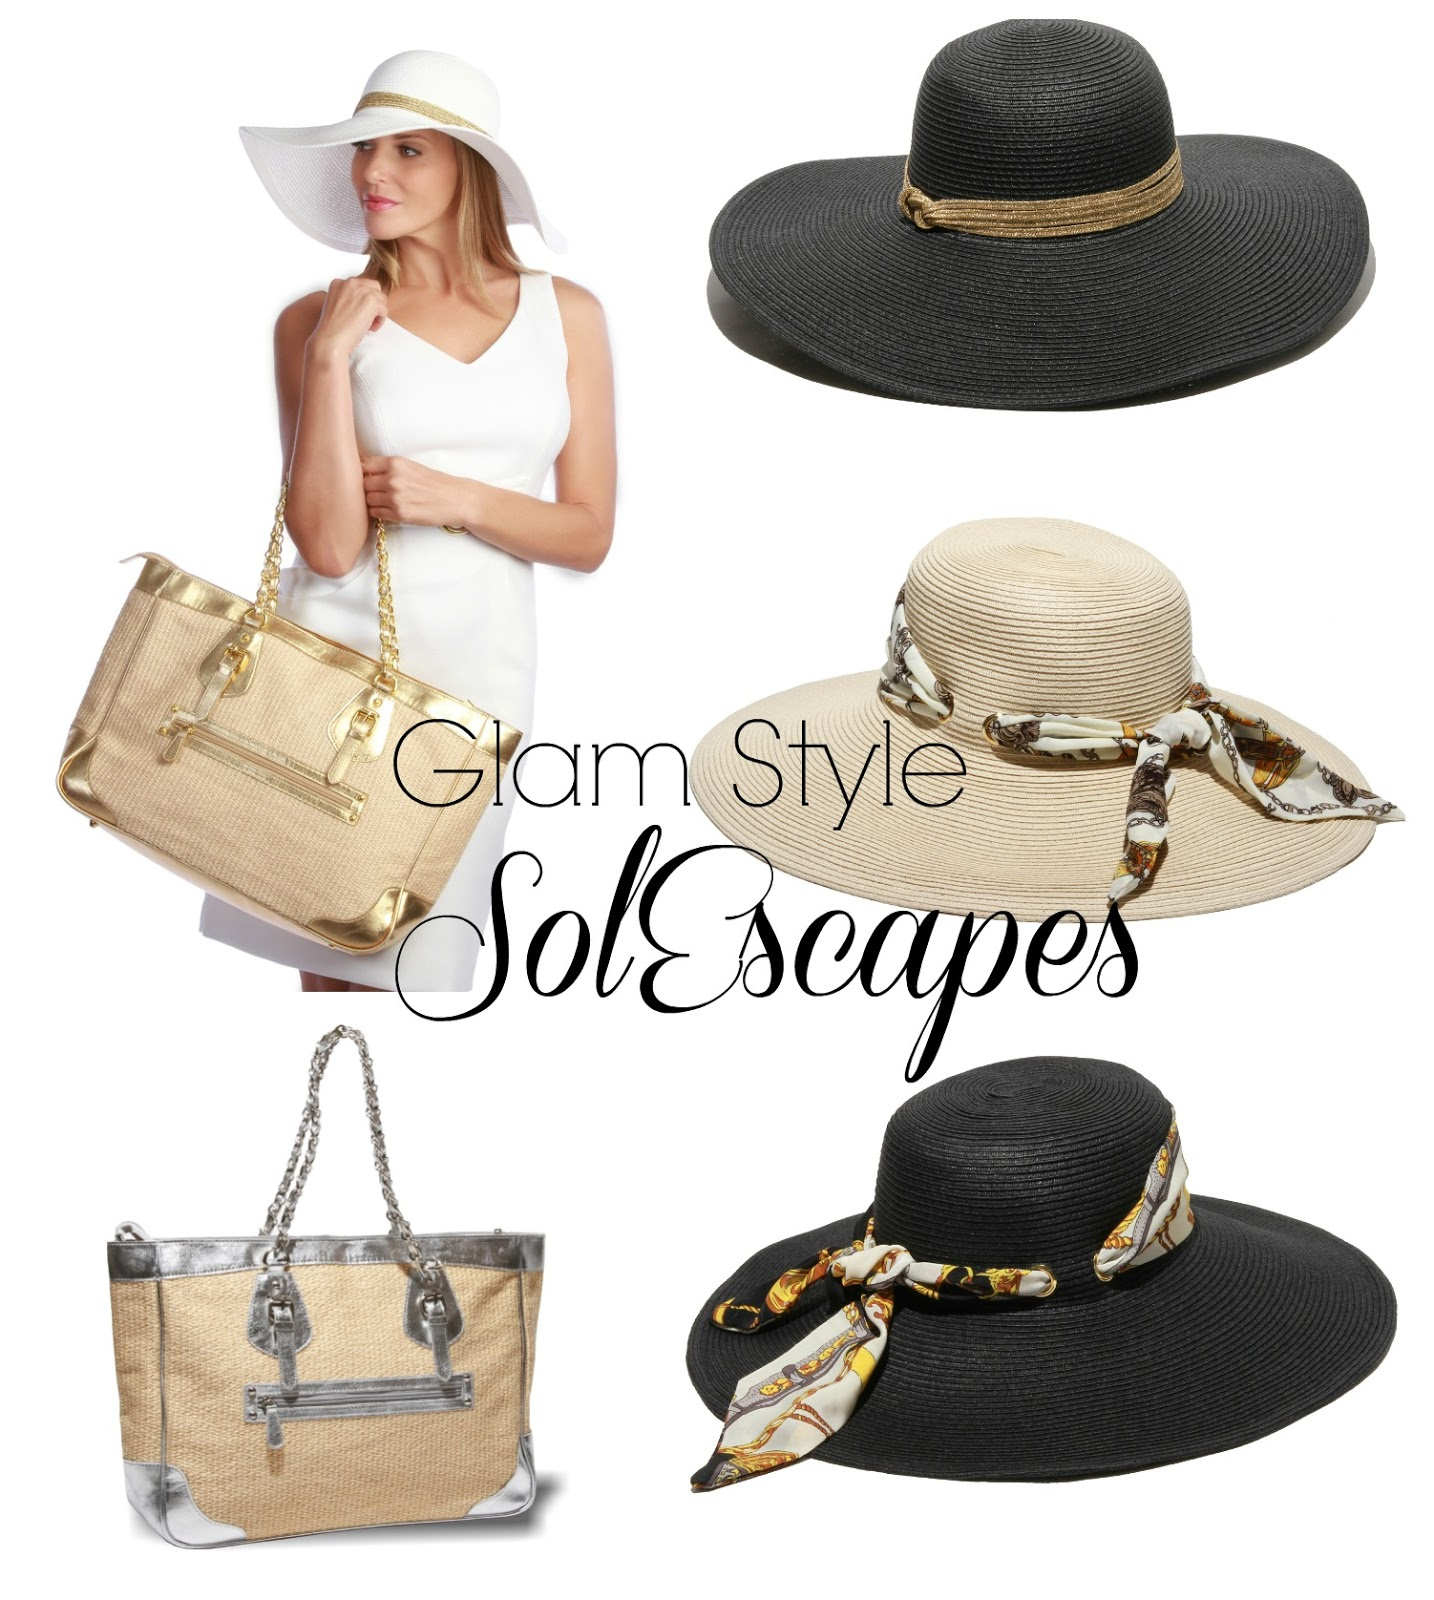 http://www.solescapes.com/Glam-Style-s/2210.htm